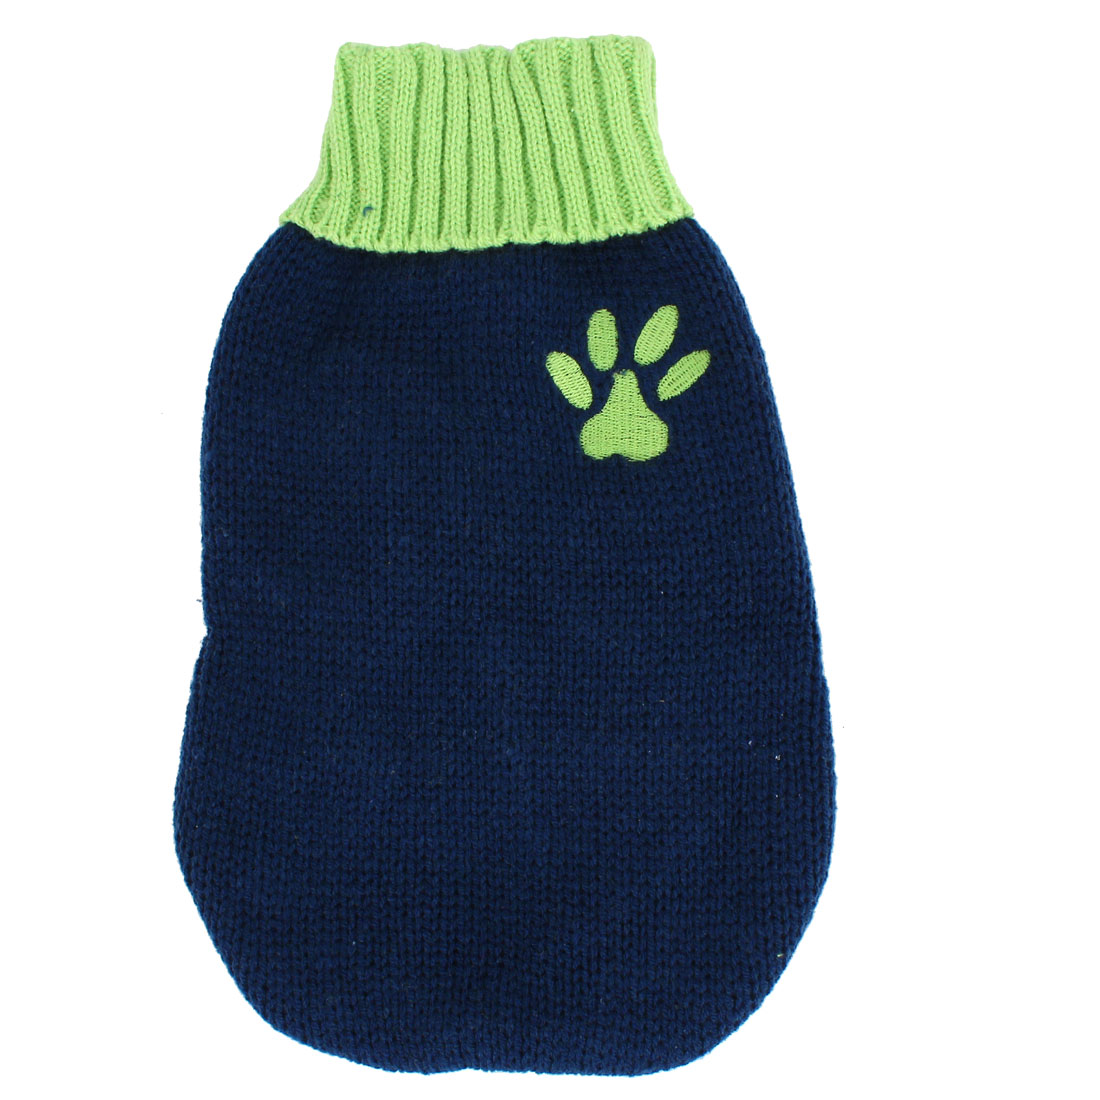 Pet Dog Doggy Ribbed Cuff Knitwear Turtleneck Apparel Sweater Dark Blue Green Size XXS